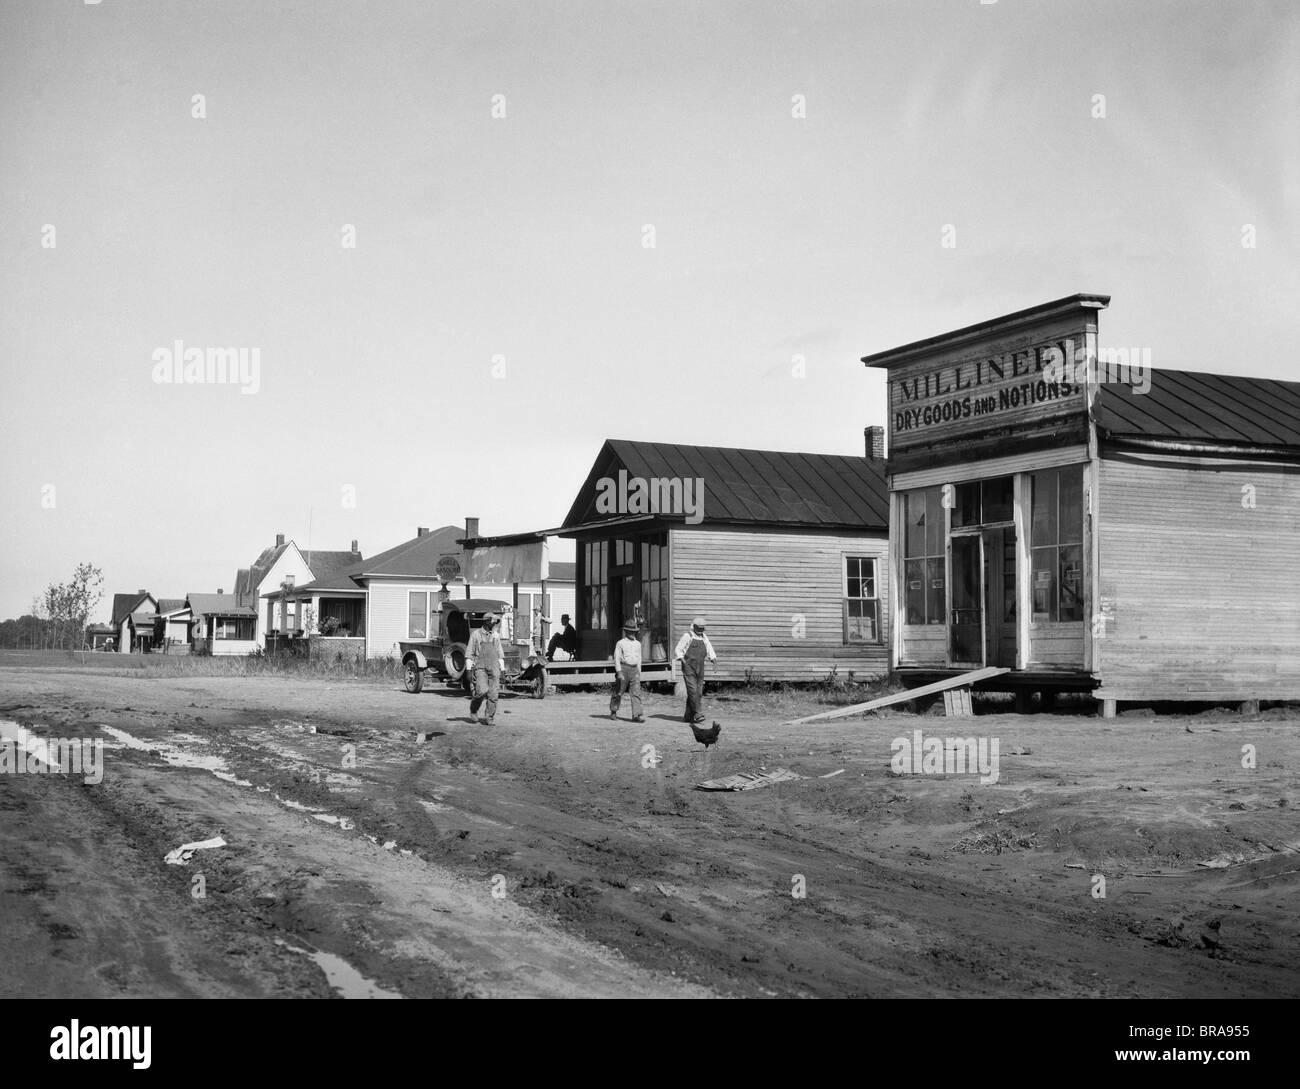 1920s 1928 MAIN STREET OF COLUMBUS KY WHICH WAS MOVED TO HIGHER GROUND AFTER THE 1927 FLOOD OF THE MISSISSIPPI RIVER - Stock Image